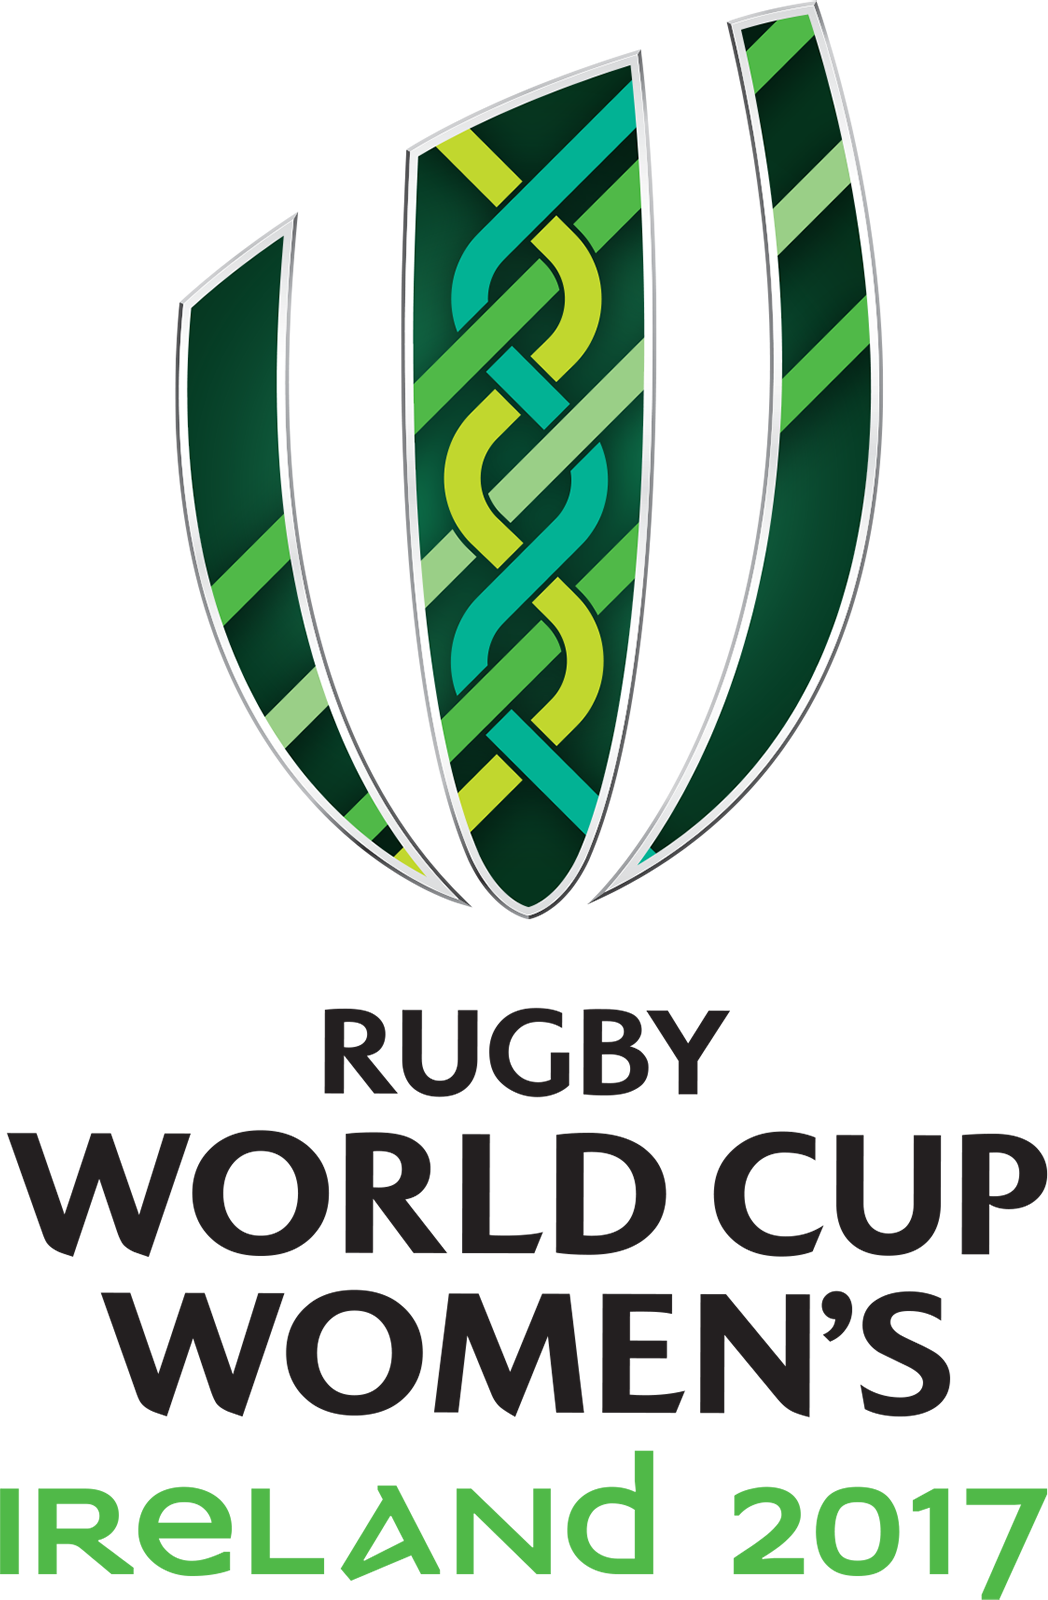 2017 Women's Rugby World Cup